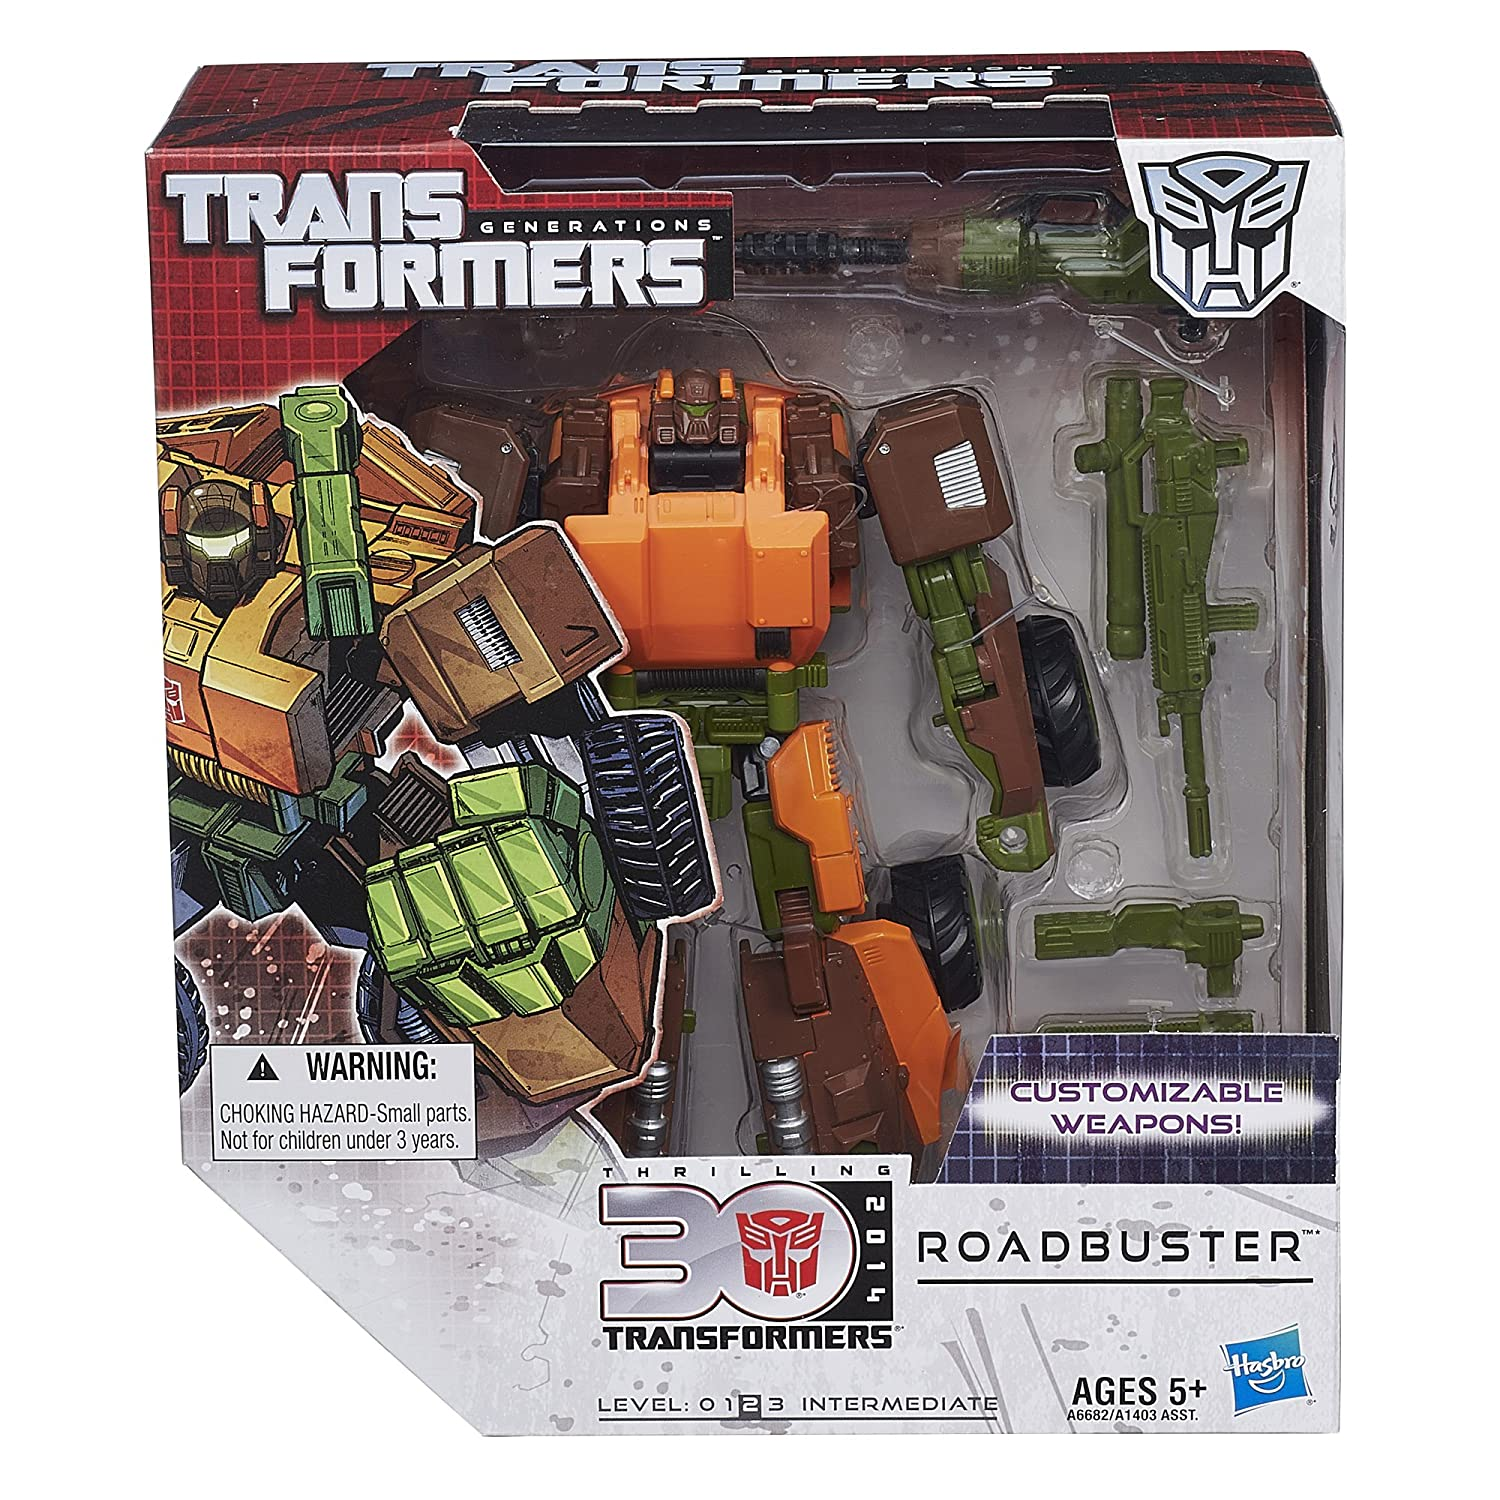 Transformers Generations Voyager Class Roadbuster Figure Hasbro A6682000